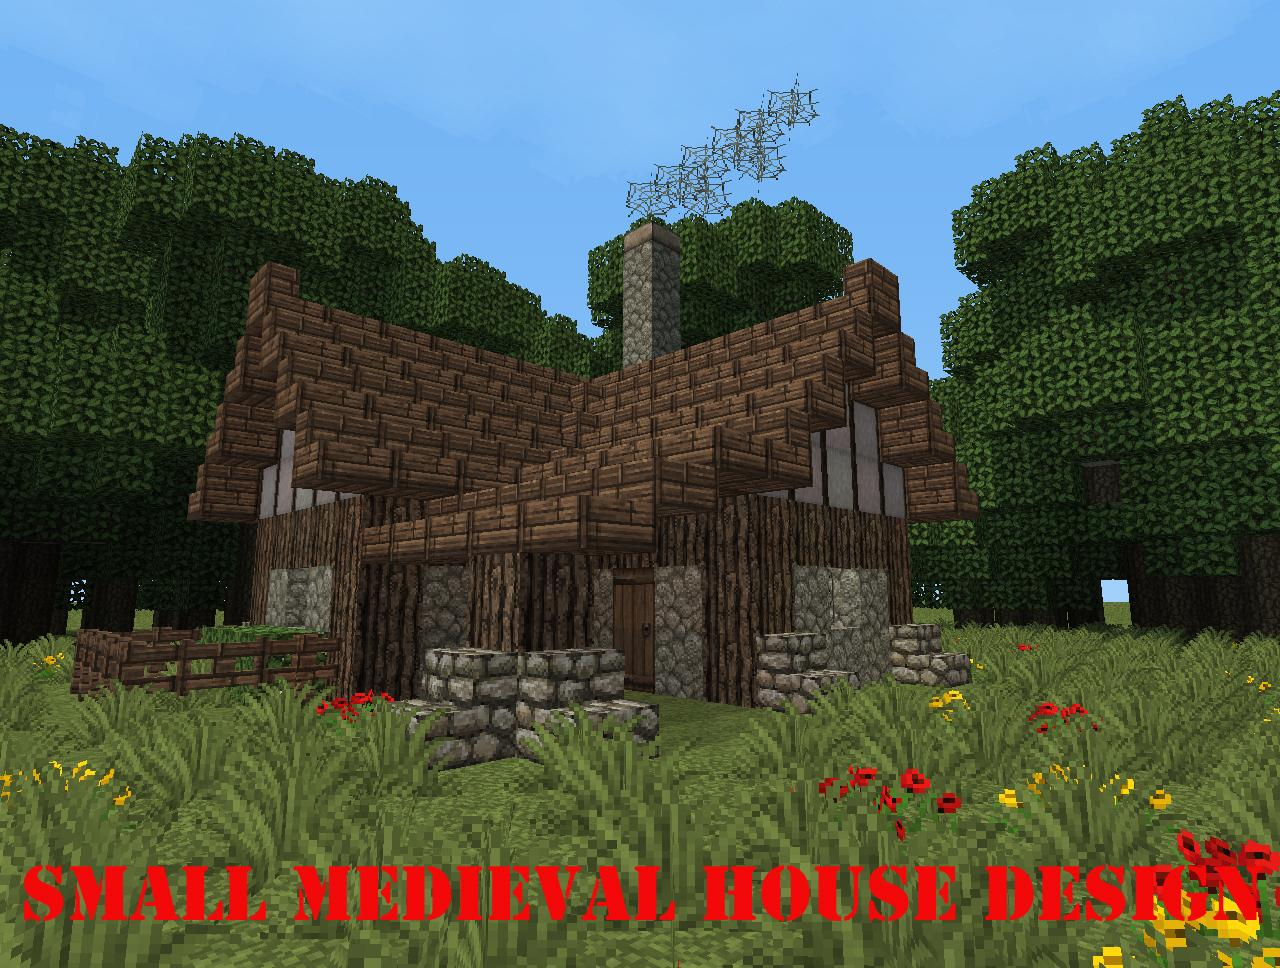 minecraft house design small medieval house design